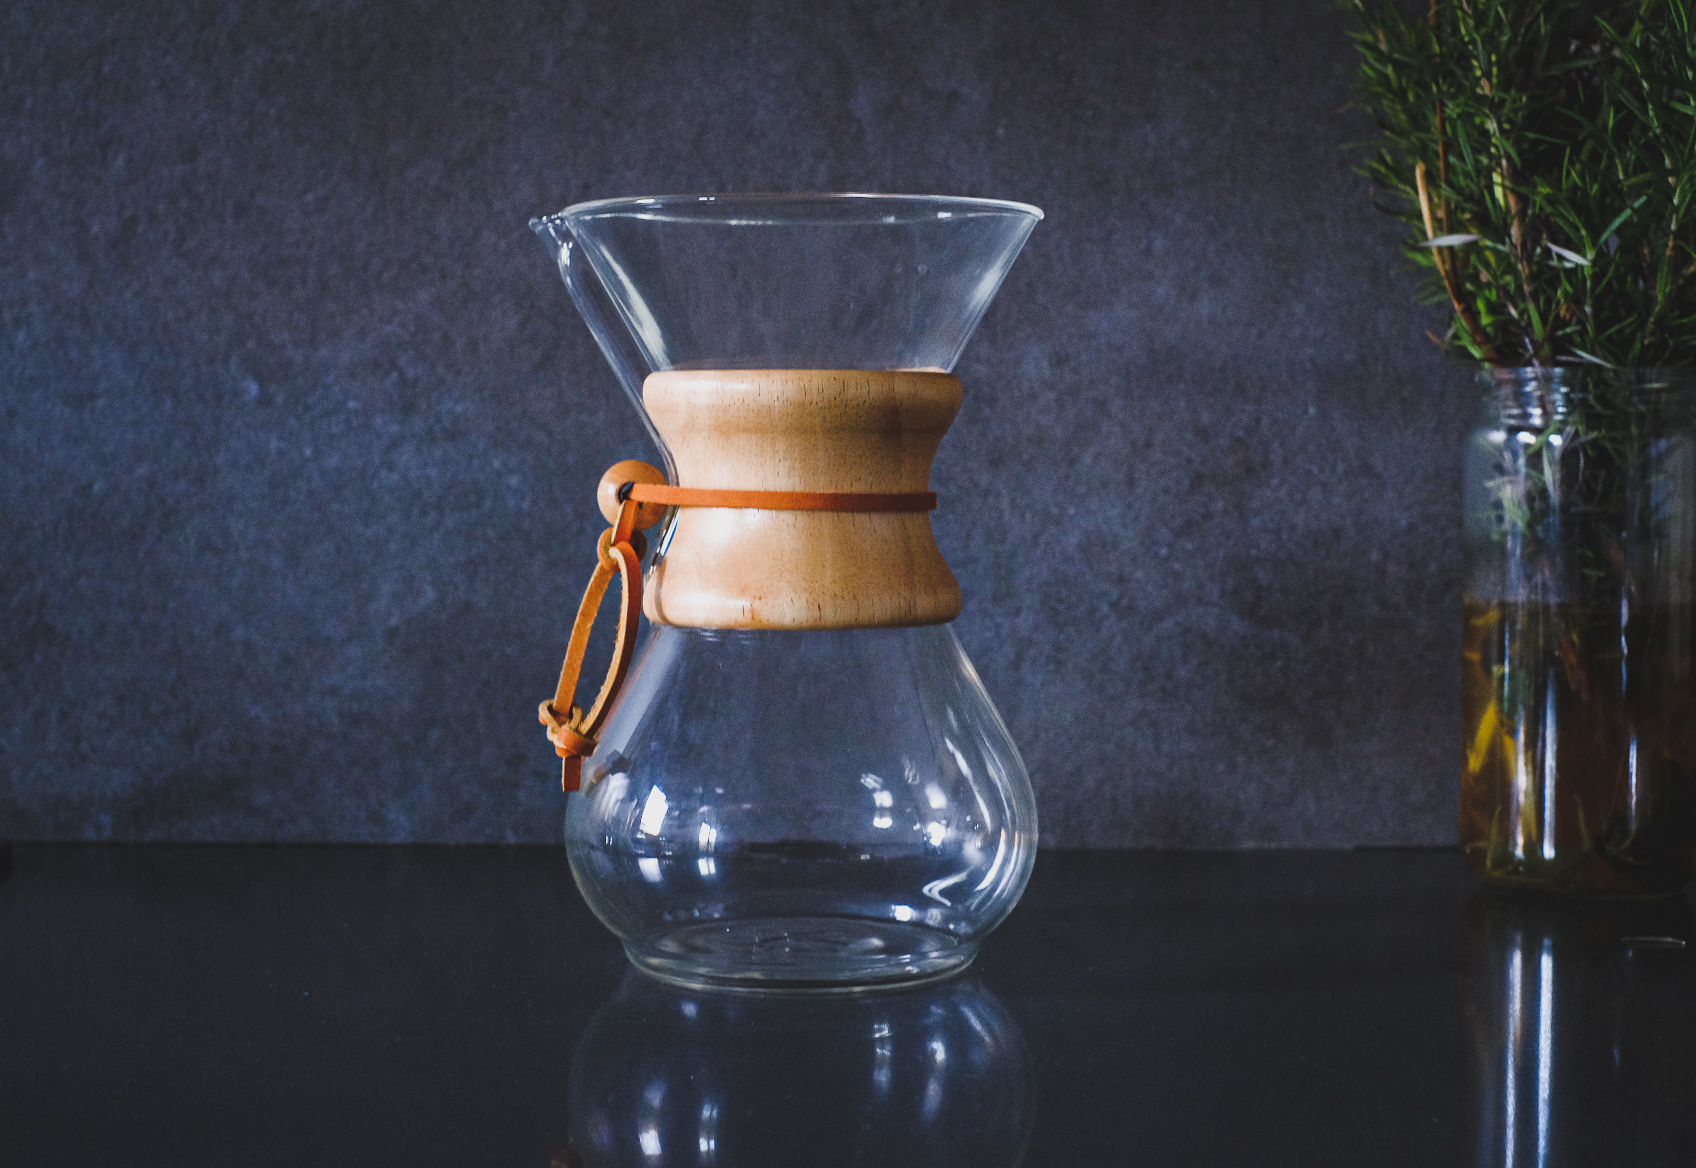 Chemex – My first time